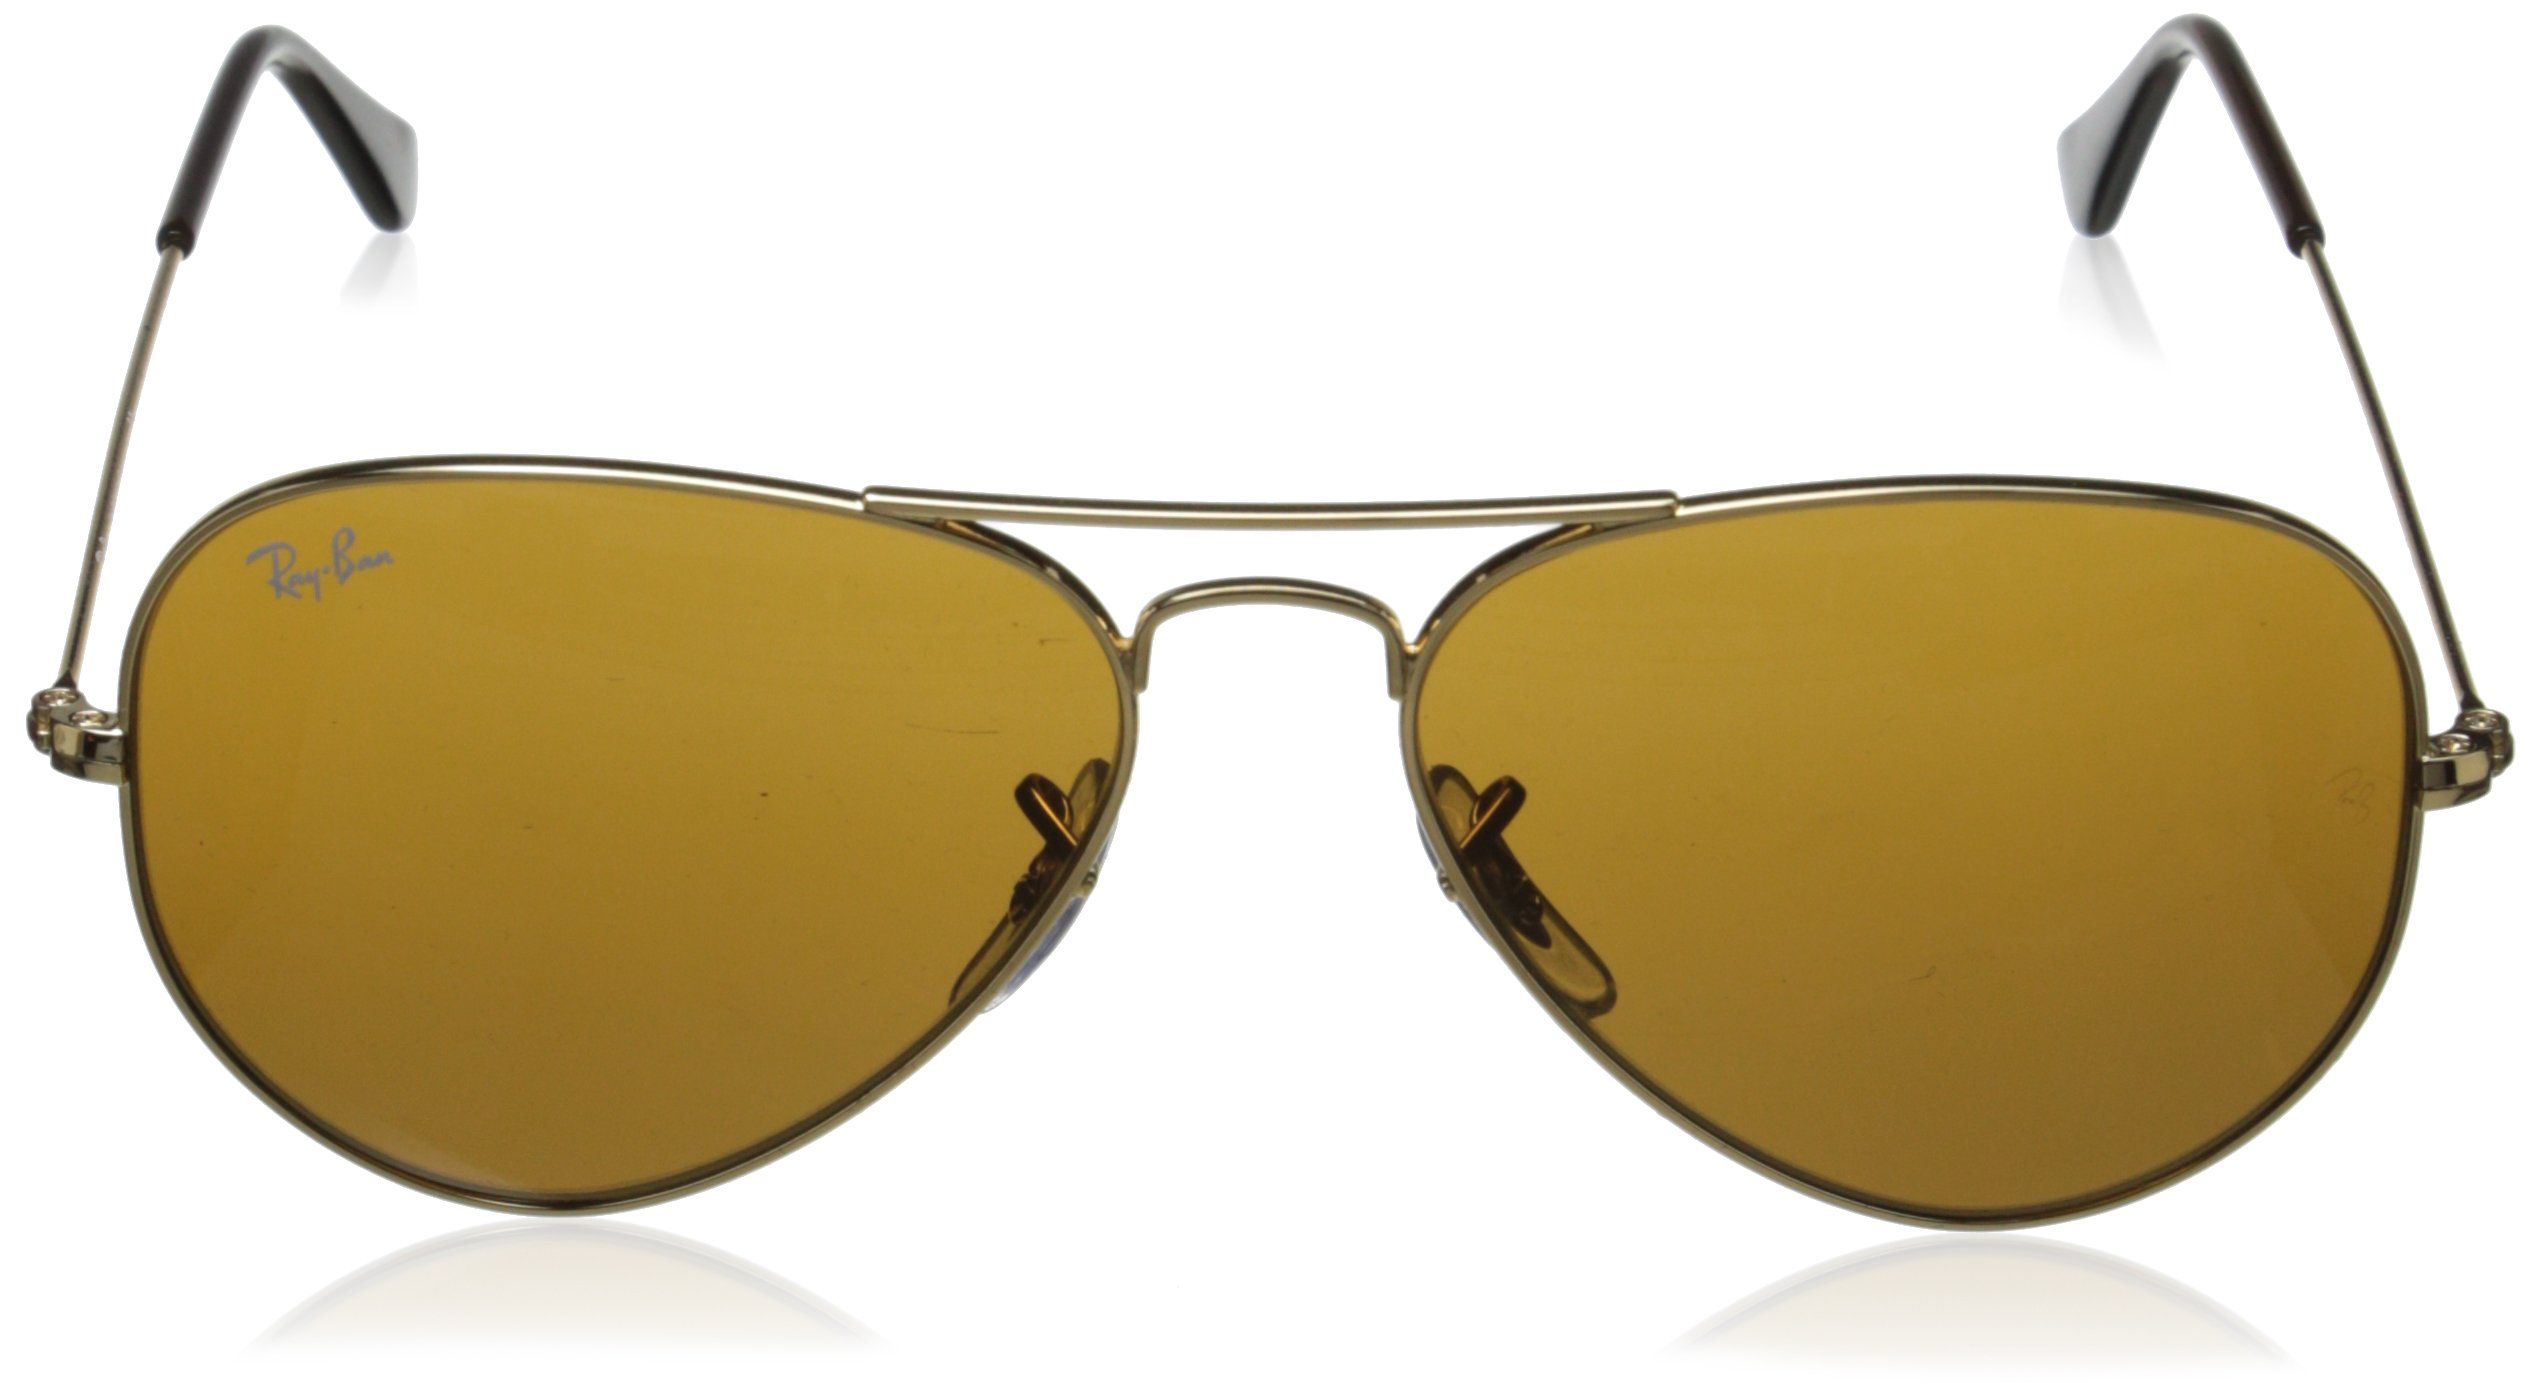 6e8c703f96 ... AVIATOR LARGE METAL - GOLD Frame CRYSTAL BROWN Lenses 55mm Non-Polarized.  Product